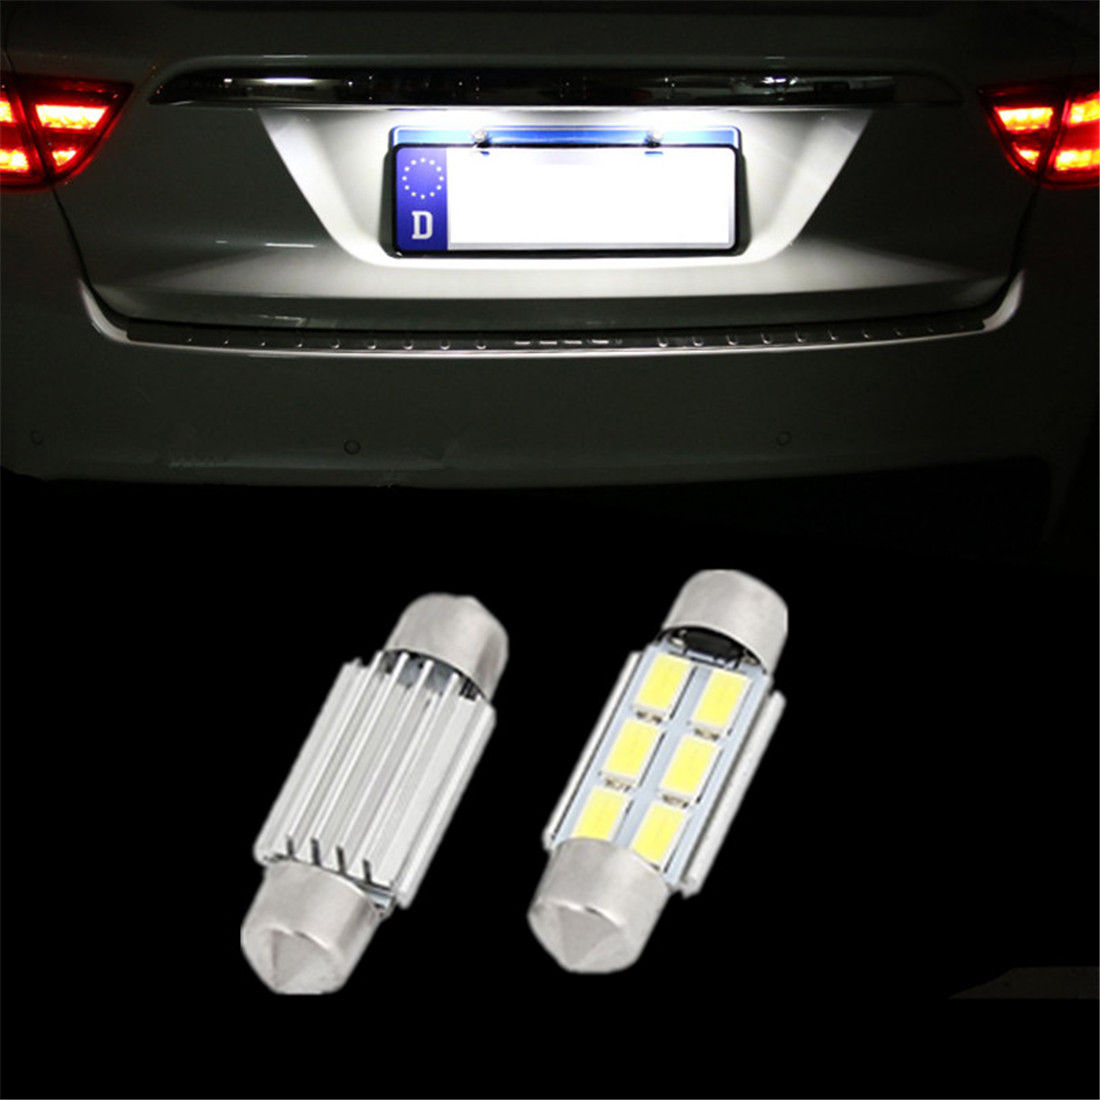 36mm No Error License Plate LED Light Bulbs Lamp C5W For Volkswagen VW JETTA GTI GOLF RABBIT MK4 MK5 PASSAT B5 B6  2x error free led license plate light for volkswagen vw passat 5d passat r36 08